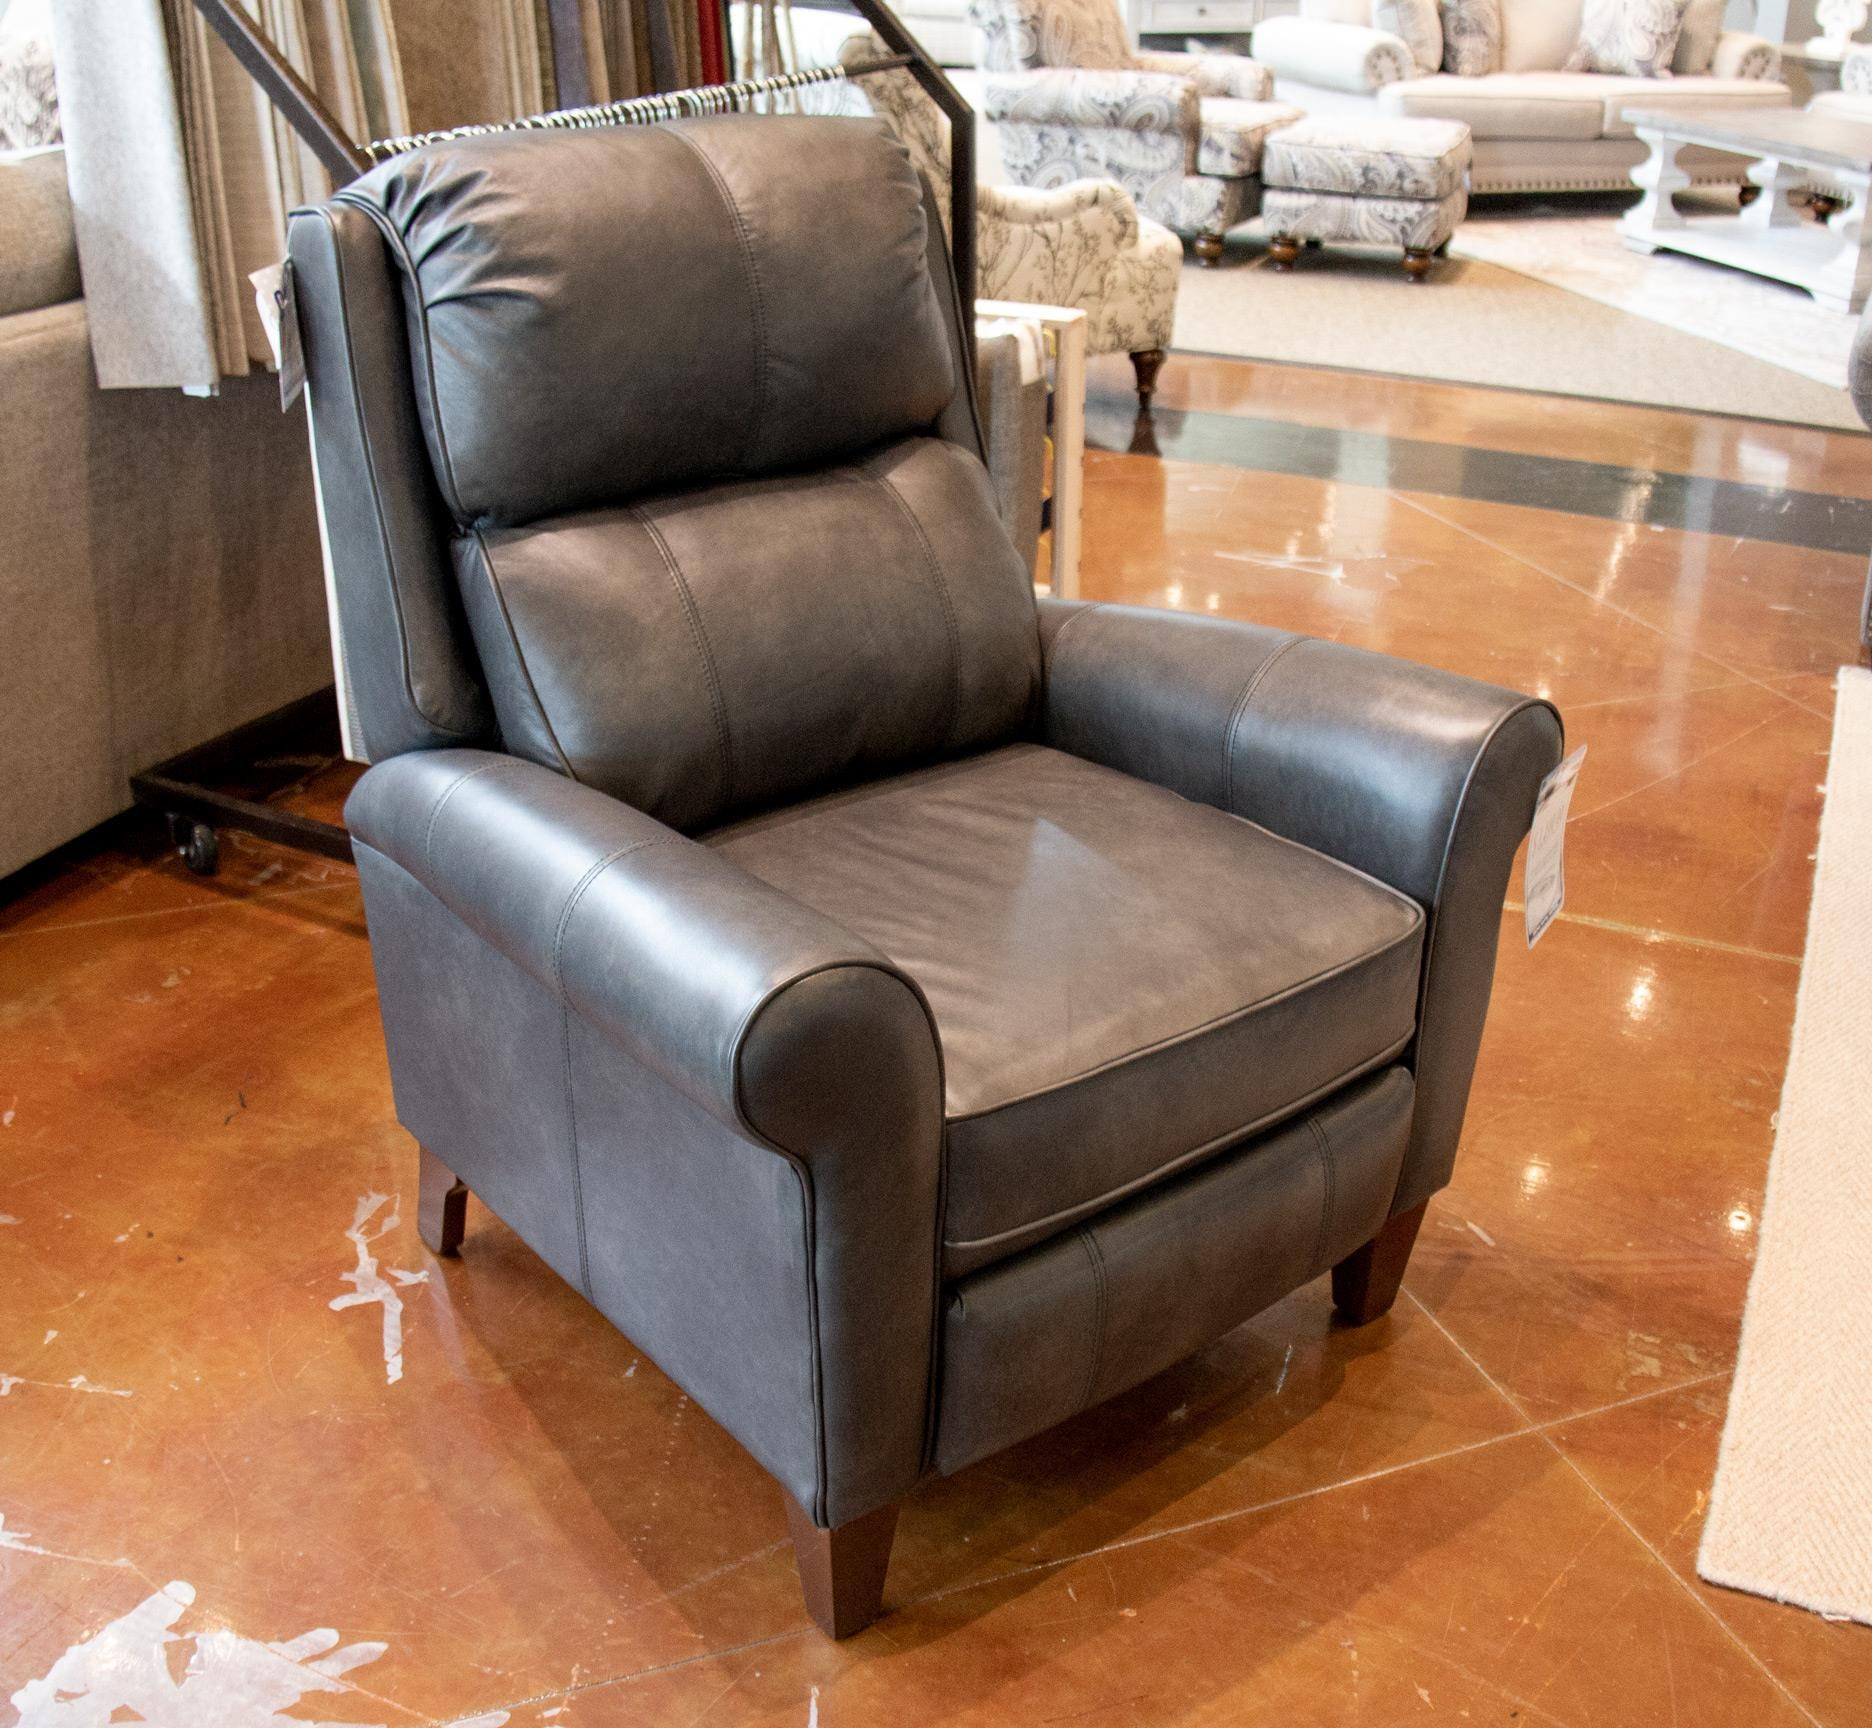 Astounding Kenzie Revelation Steel Leather Pushback Recliner Pdpeps Interior Chair Design Pdpepsorg